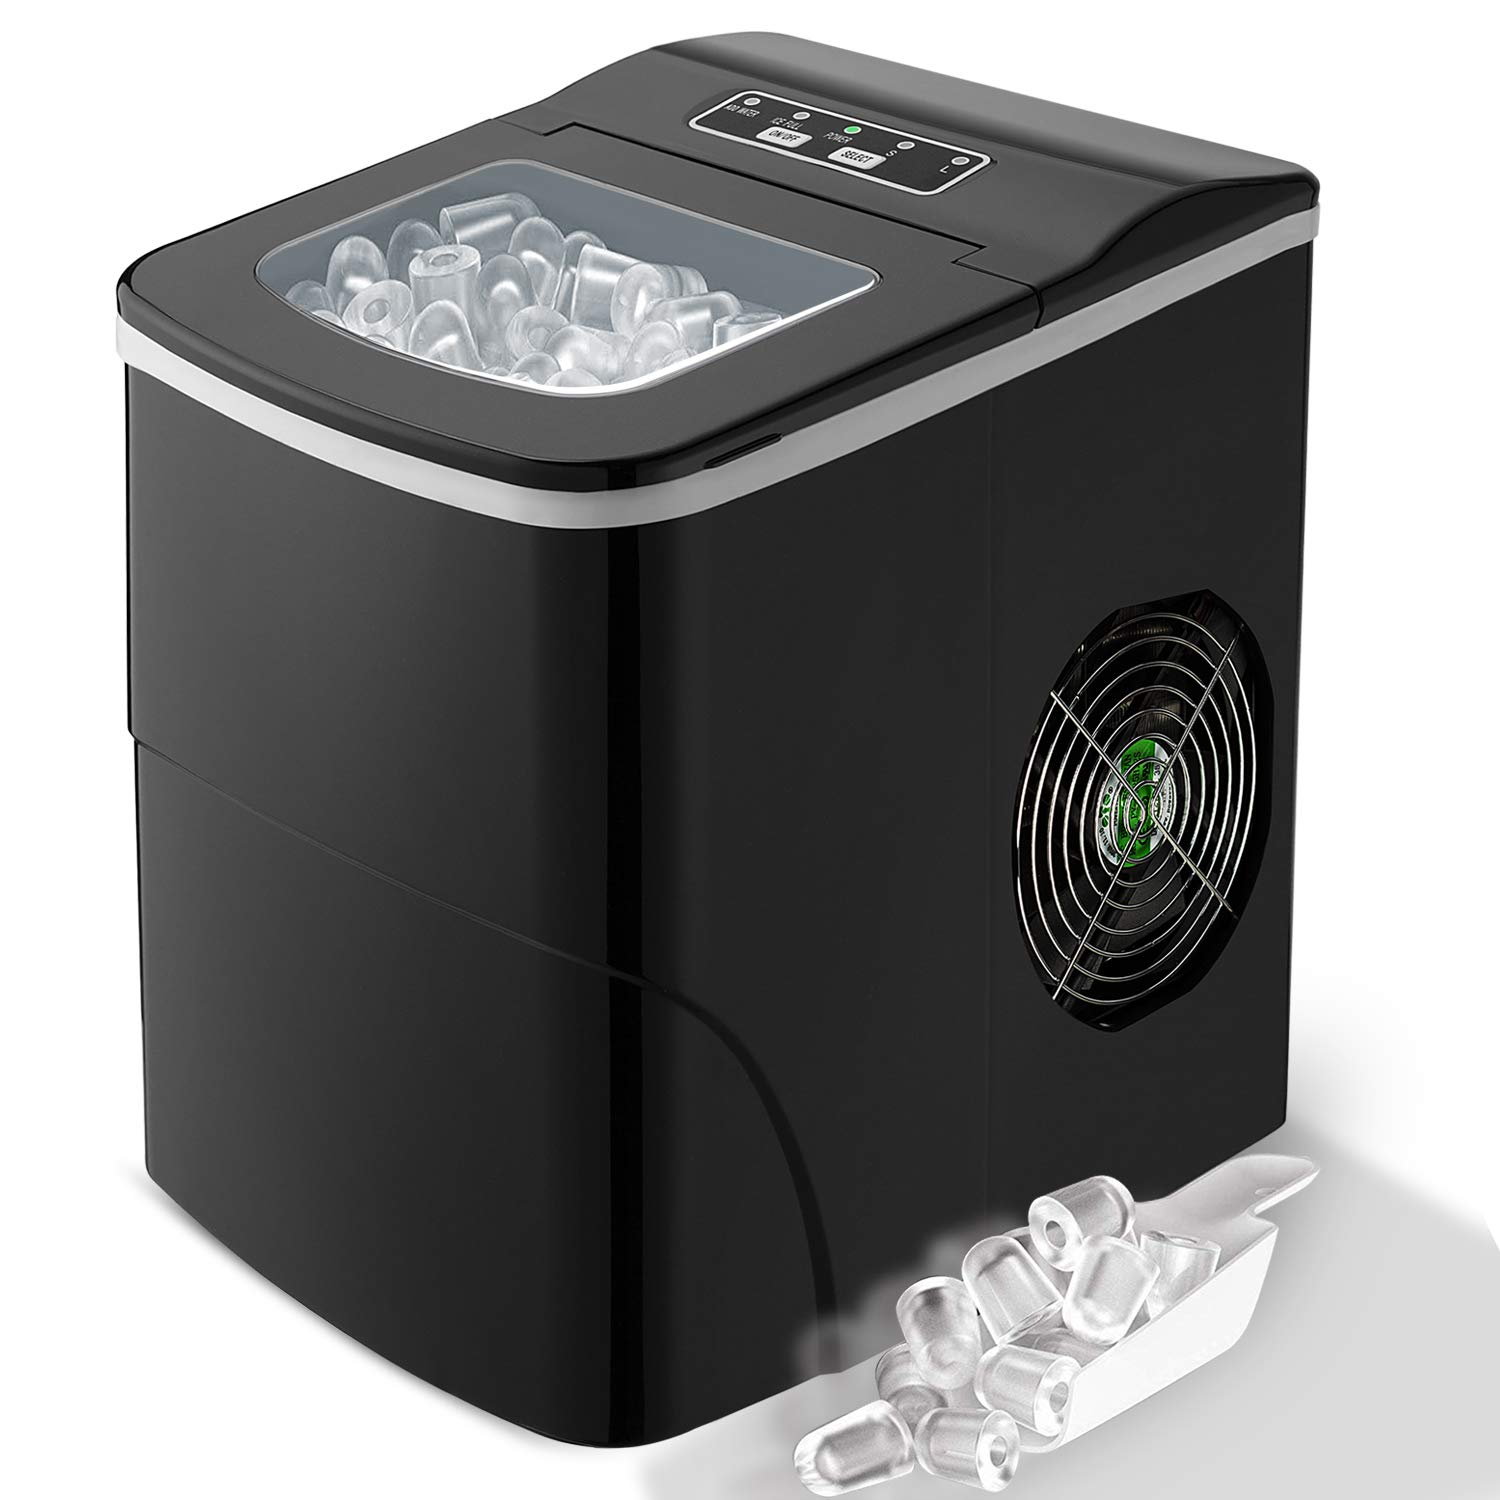 LED Display. Countertop Ice Maker Produce 9 Bullet-Shaped Ice Cubes in 7-9 Minutes with Scoop and Basket FEANOR Electric Ice Maker Machine Silver Portable Ice Maker Making Ice 26lbs//24hrs